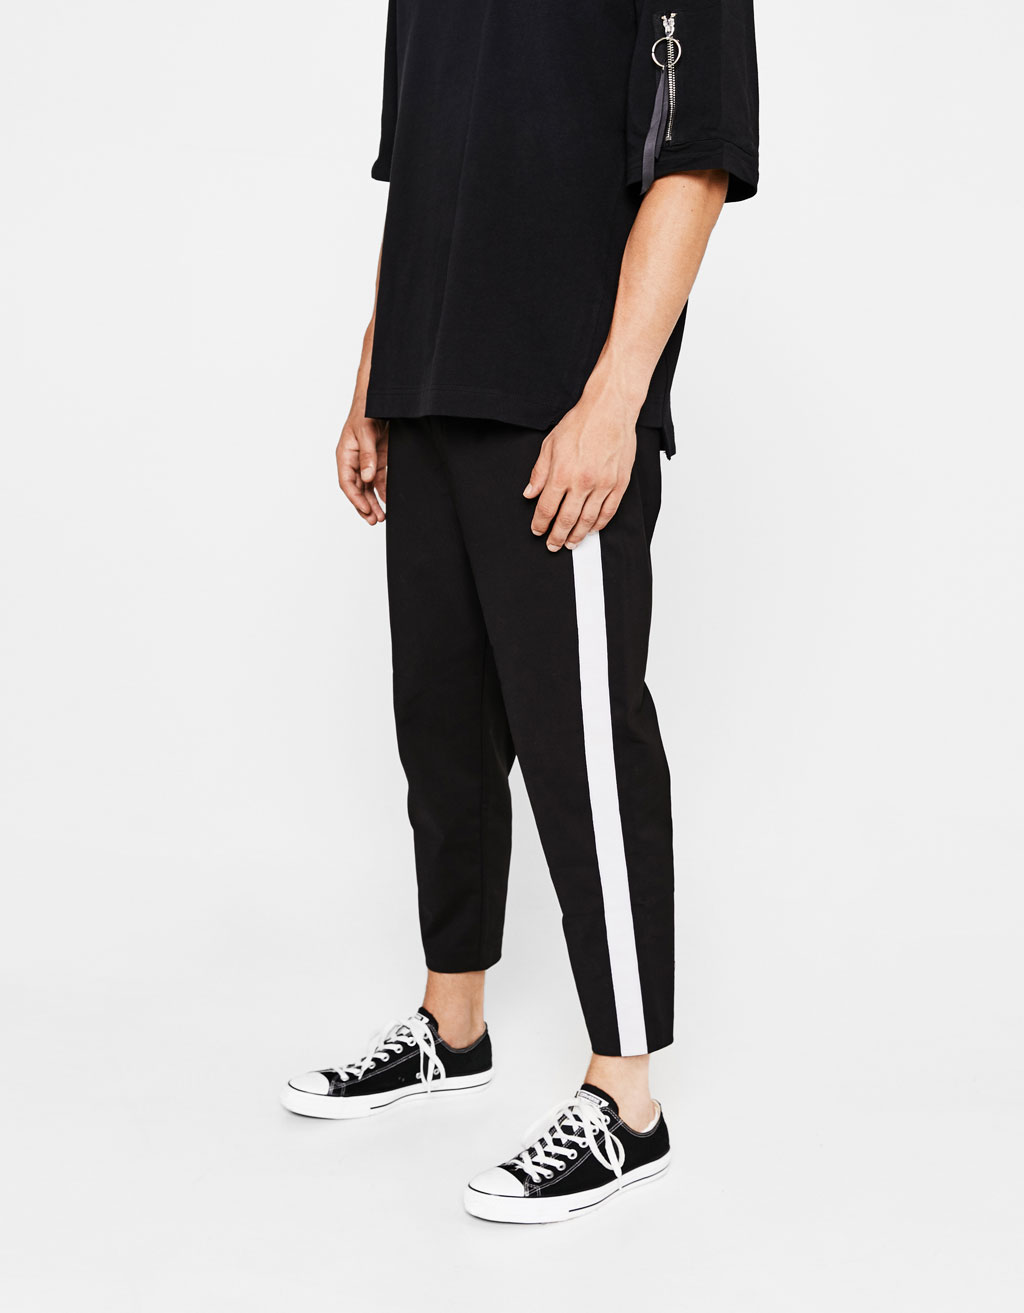 Technical pants with side stripes